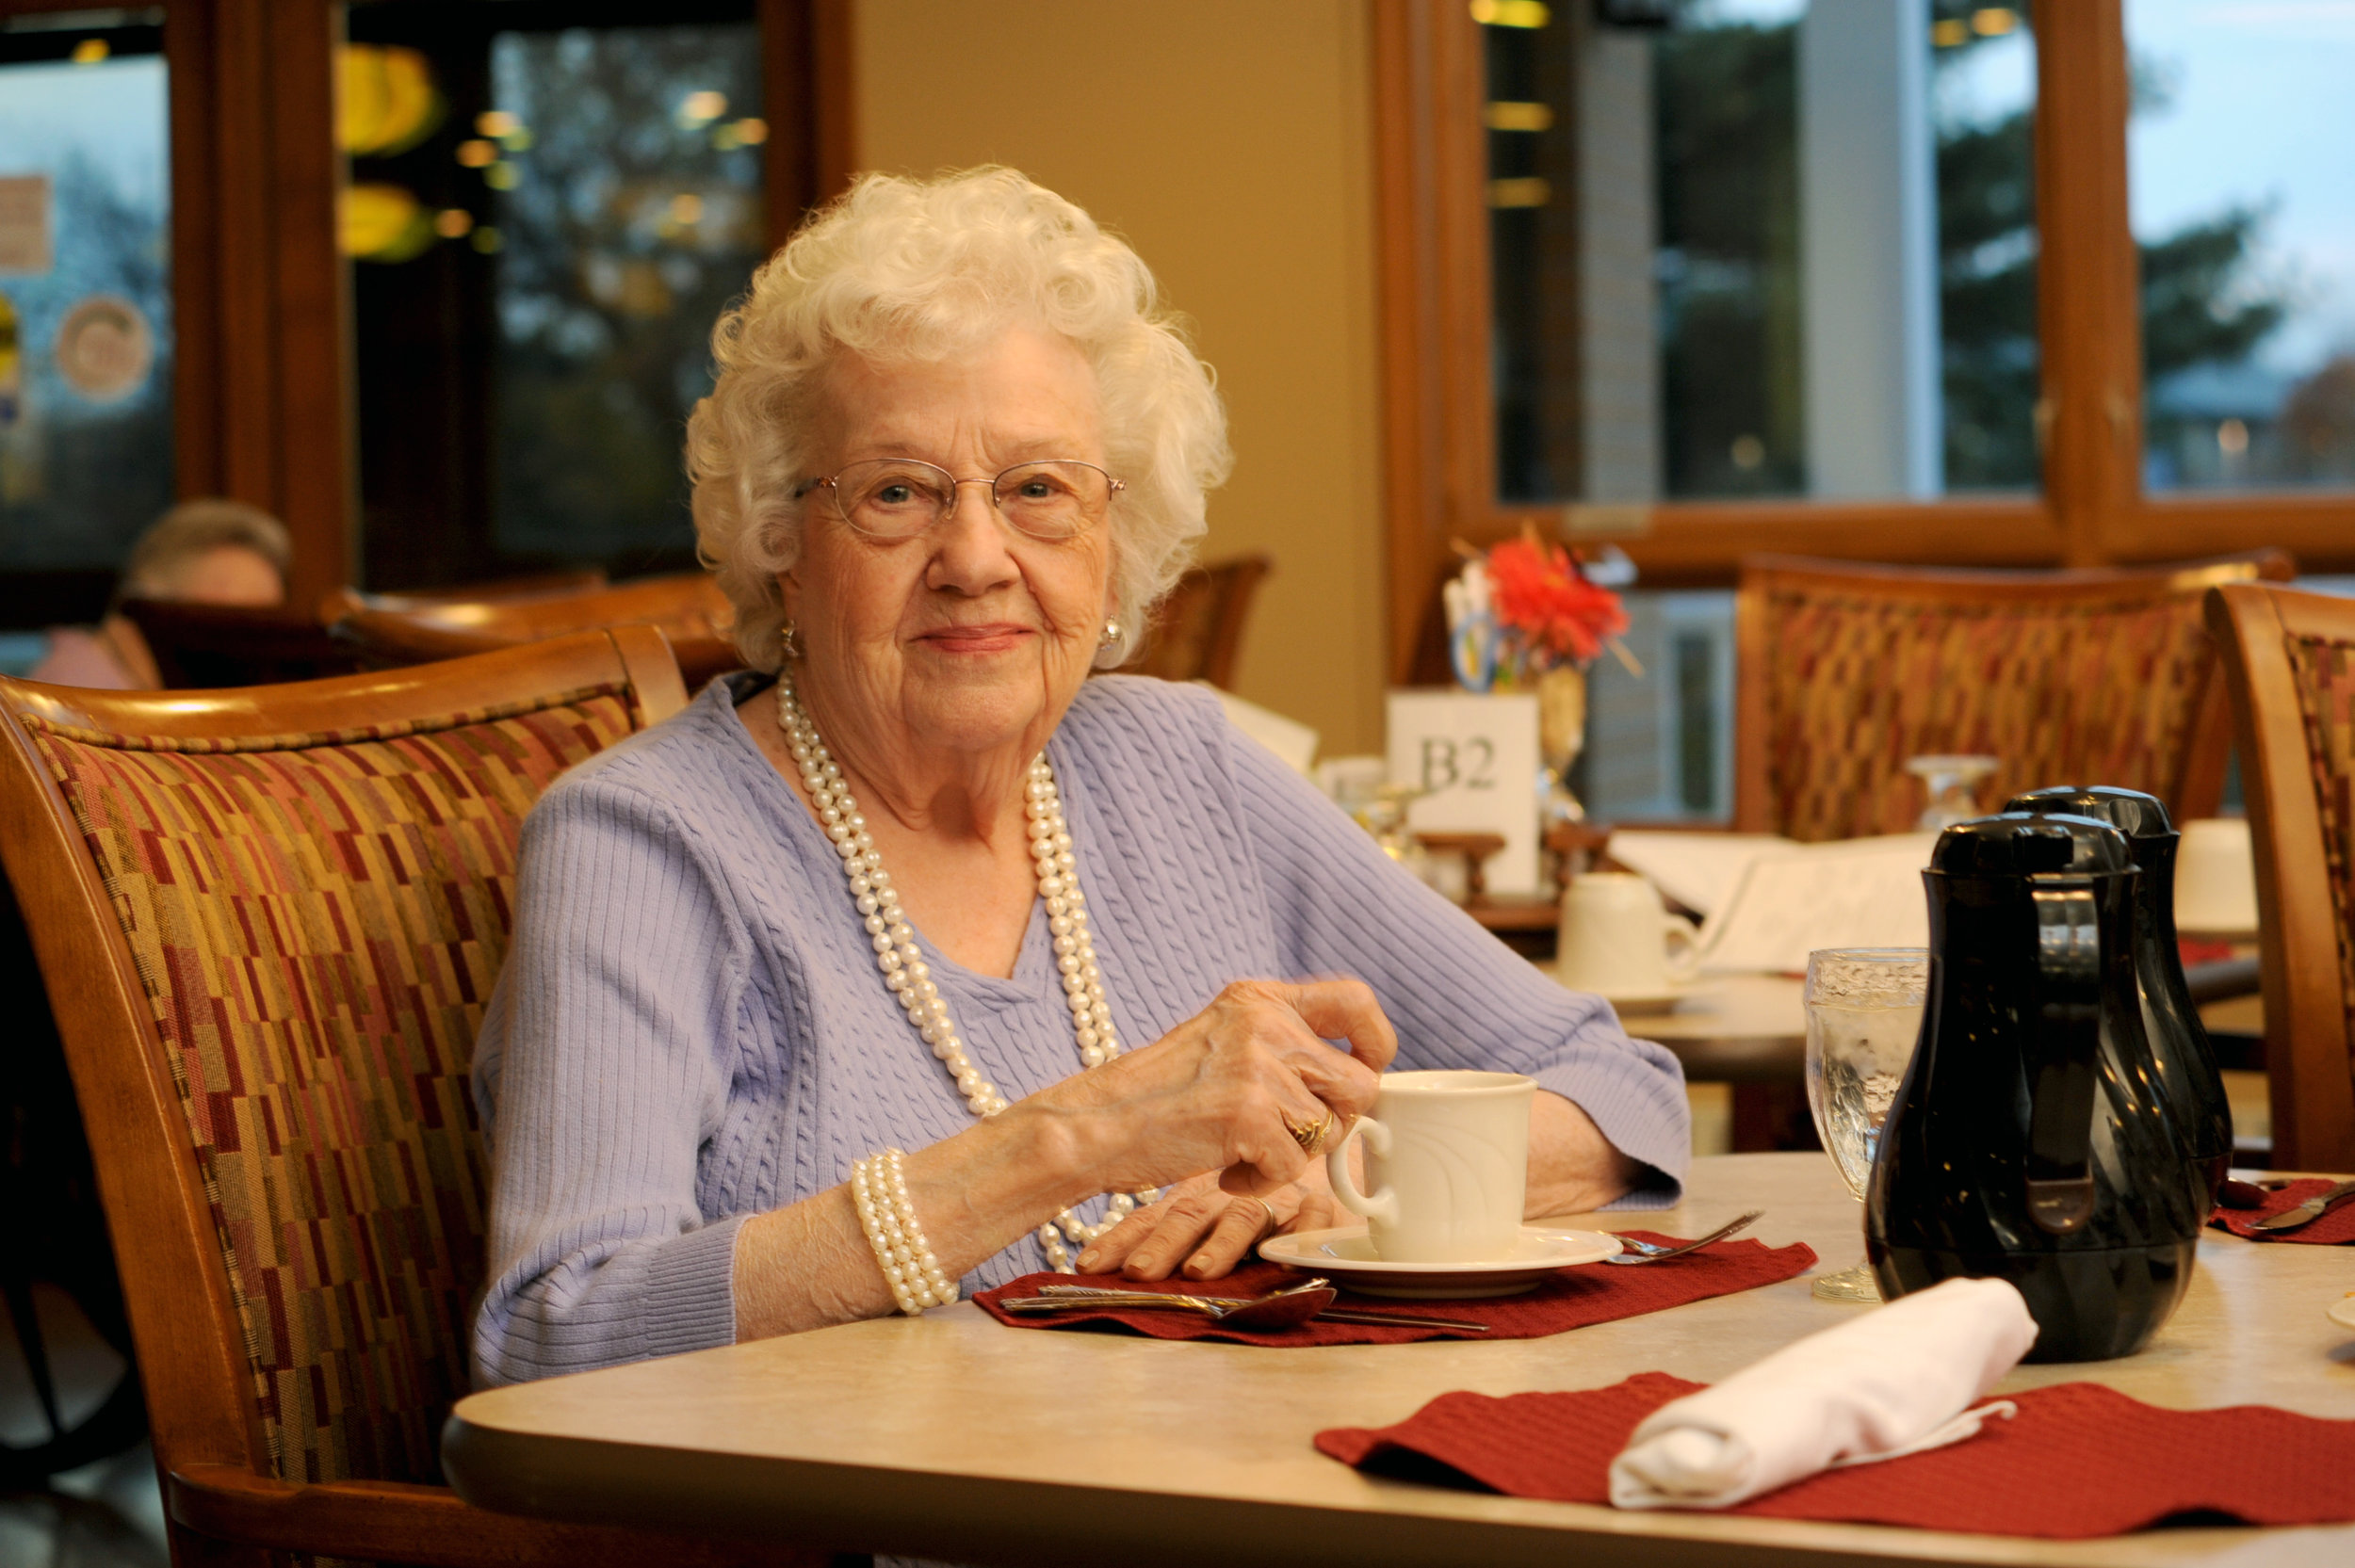 """""""The staff is so friendly and helpful, from the CEO to the great high school students who work as servers in the dining room. Everyone is here for us, all of the time. In a nutshell, I'd say that we're family and they treat us like family."""" - MARY ANN SMITH, PINES VILLAGE RESIDENT"""